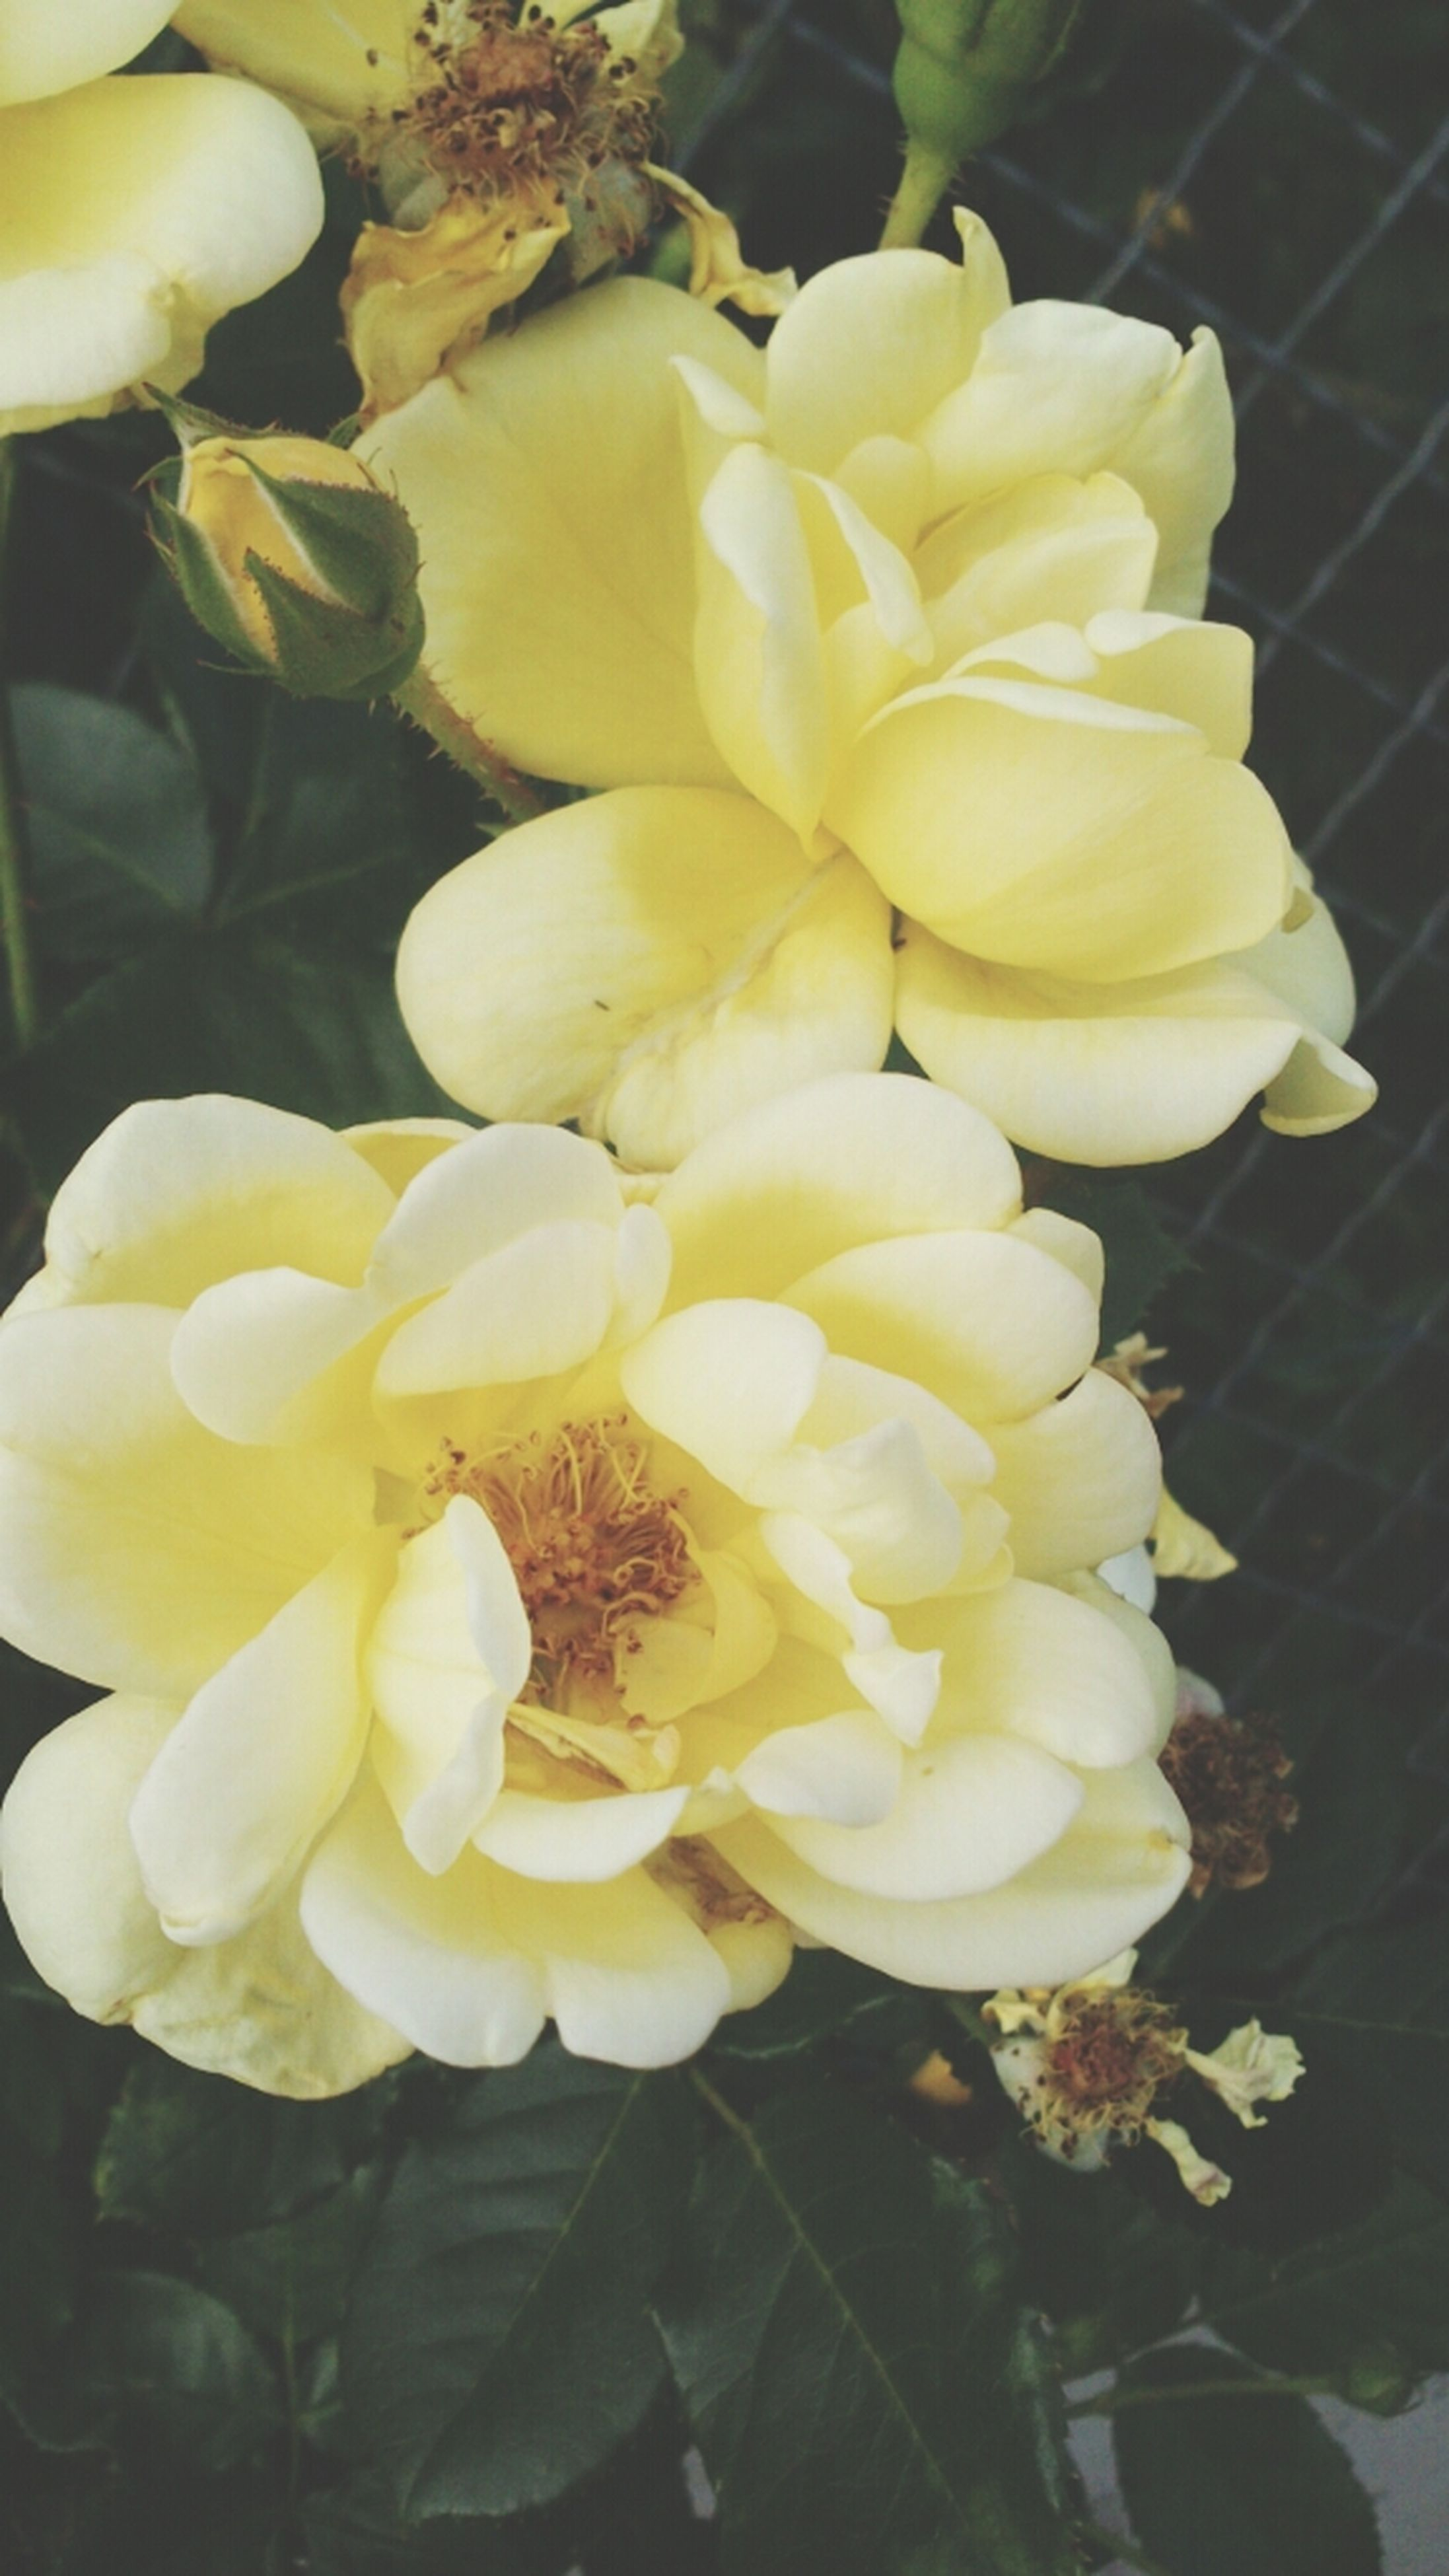 flower, petal, flower head, freshness, fragility, yellow, beauty in nature, growth, blooming, close-up, nature, plant, white color, rose - flower, in bloom, focus on foreground, blossom, high angle view, no people, leaf